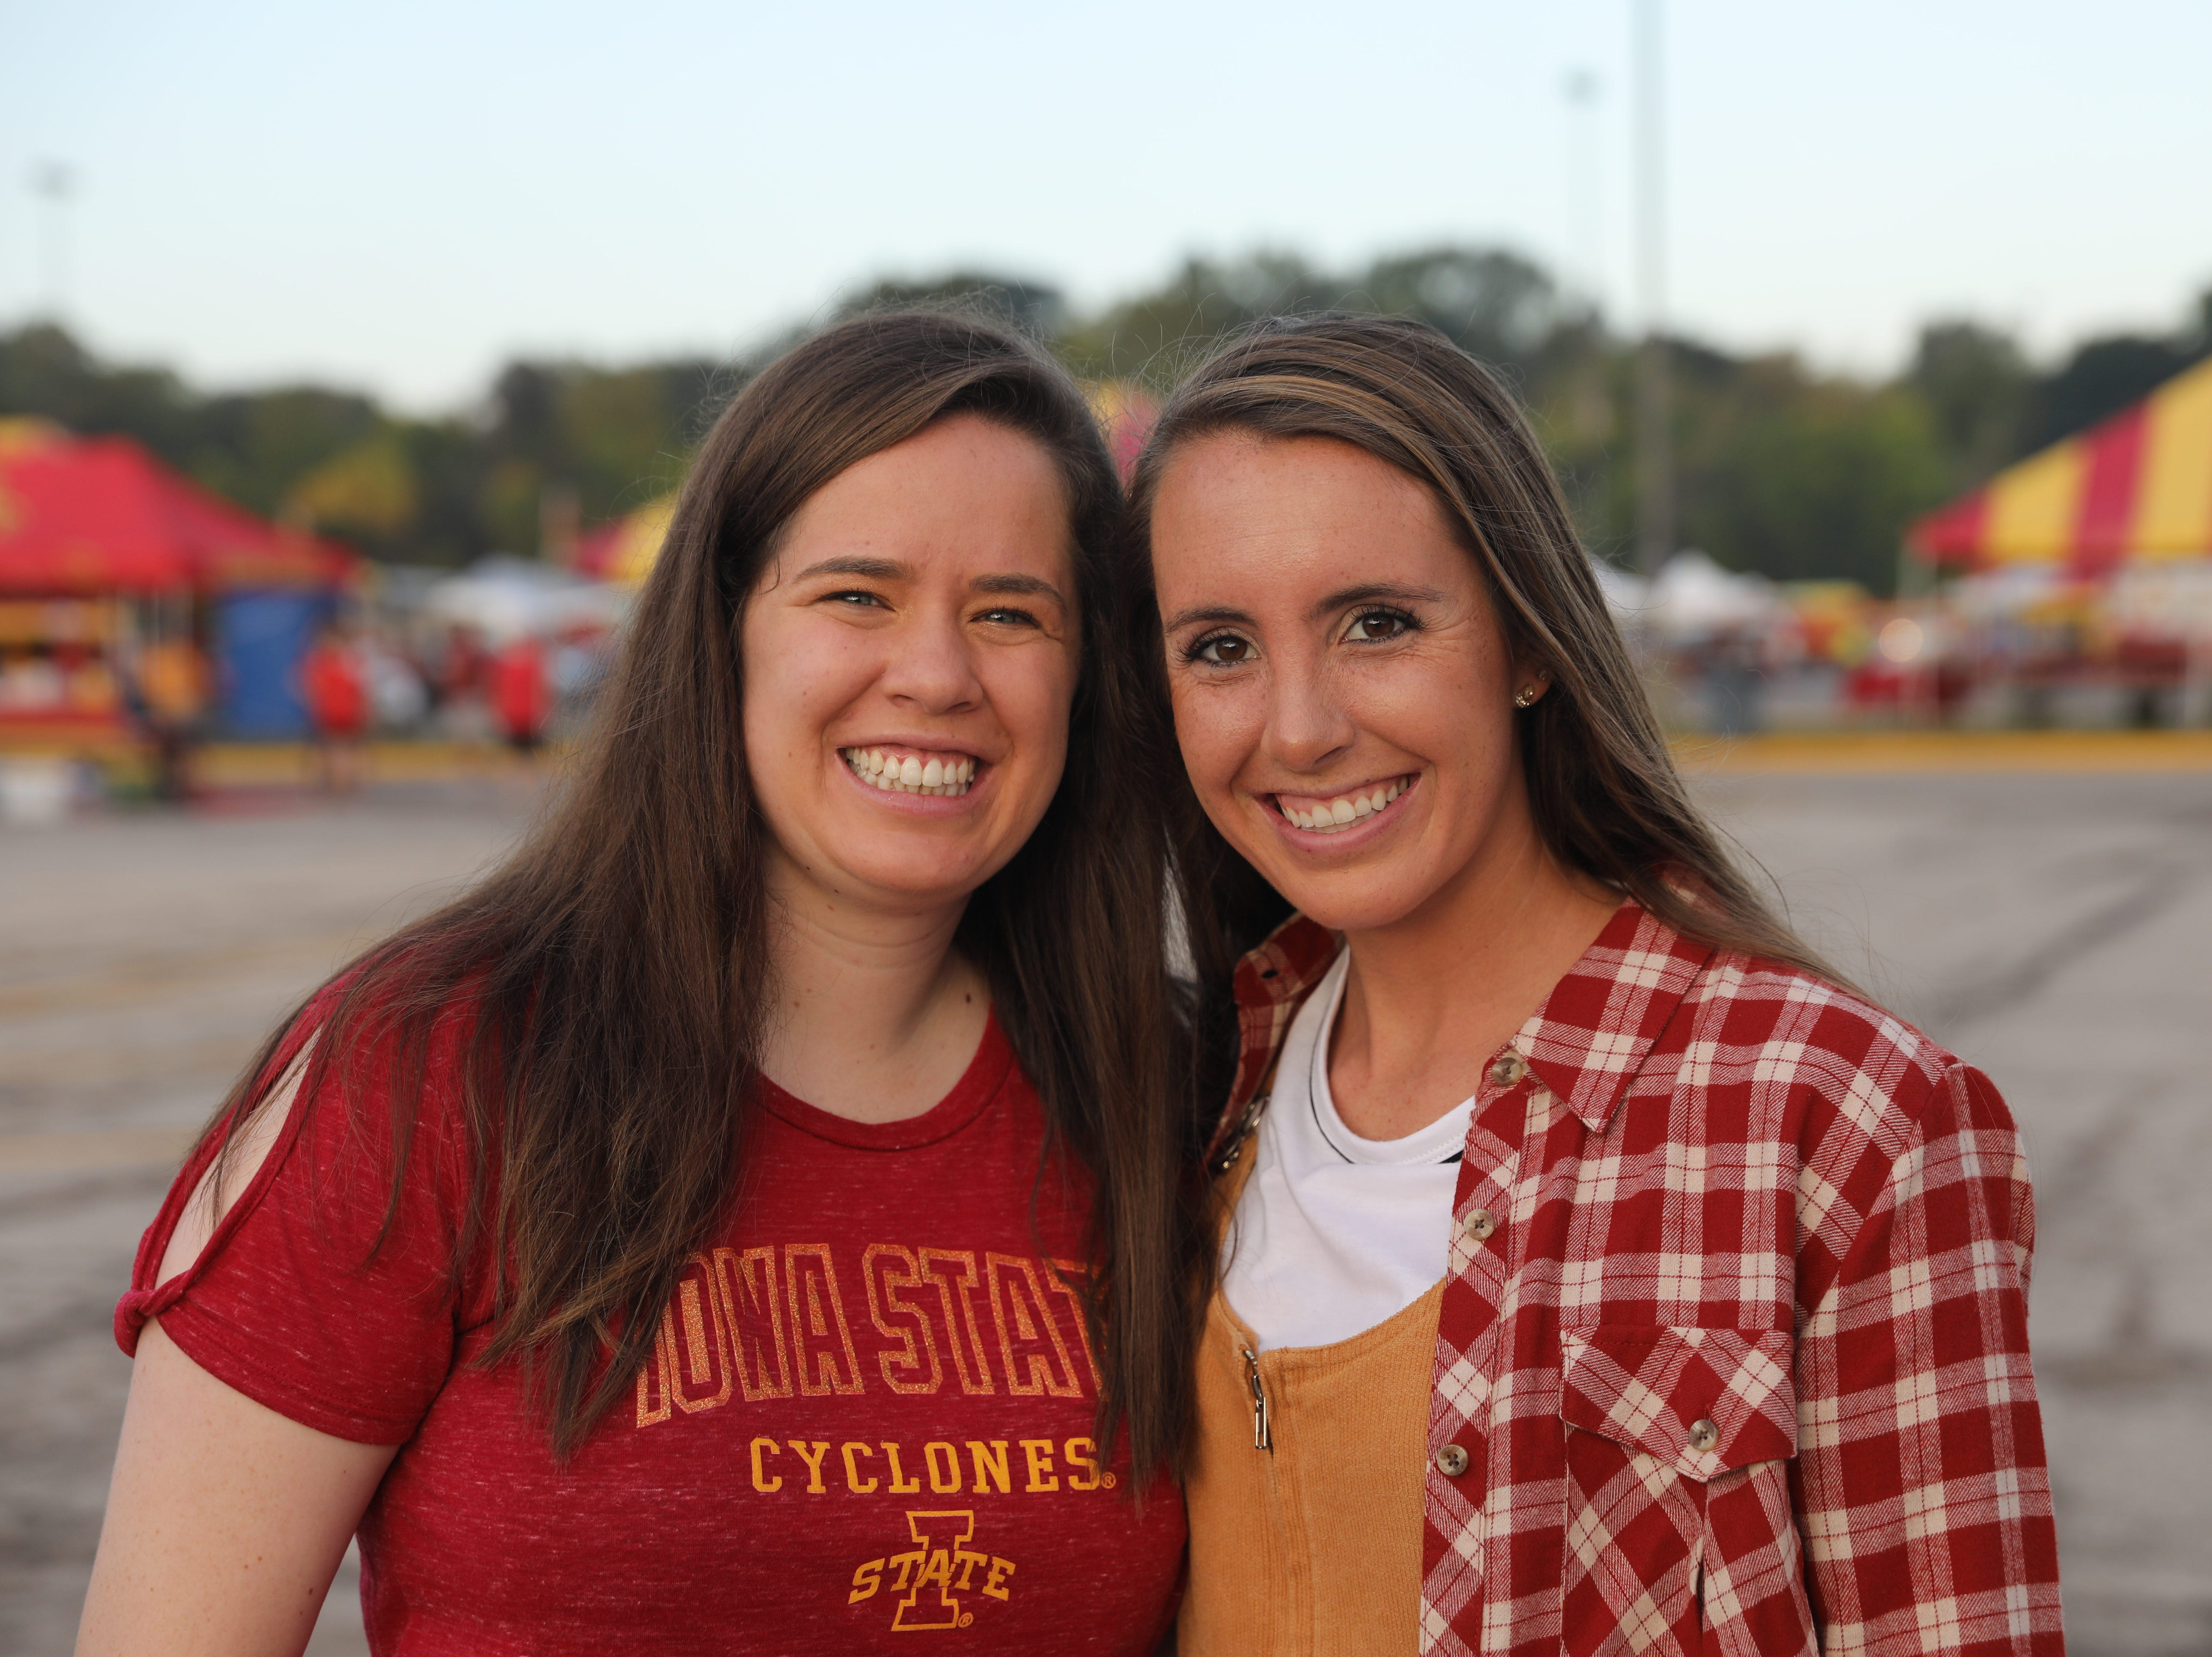 Haley Murphy, 24, of Des Moines (left) and Adalie Schmidt, 23, of Fargo, ND, Saturday, Sept. 15, 2018, before the Iowa State football game against Oklahoma in Ames.